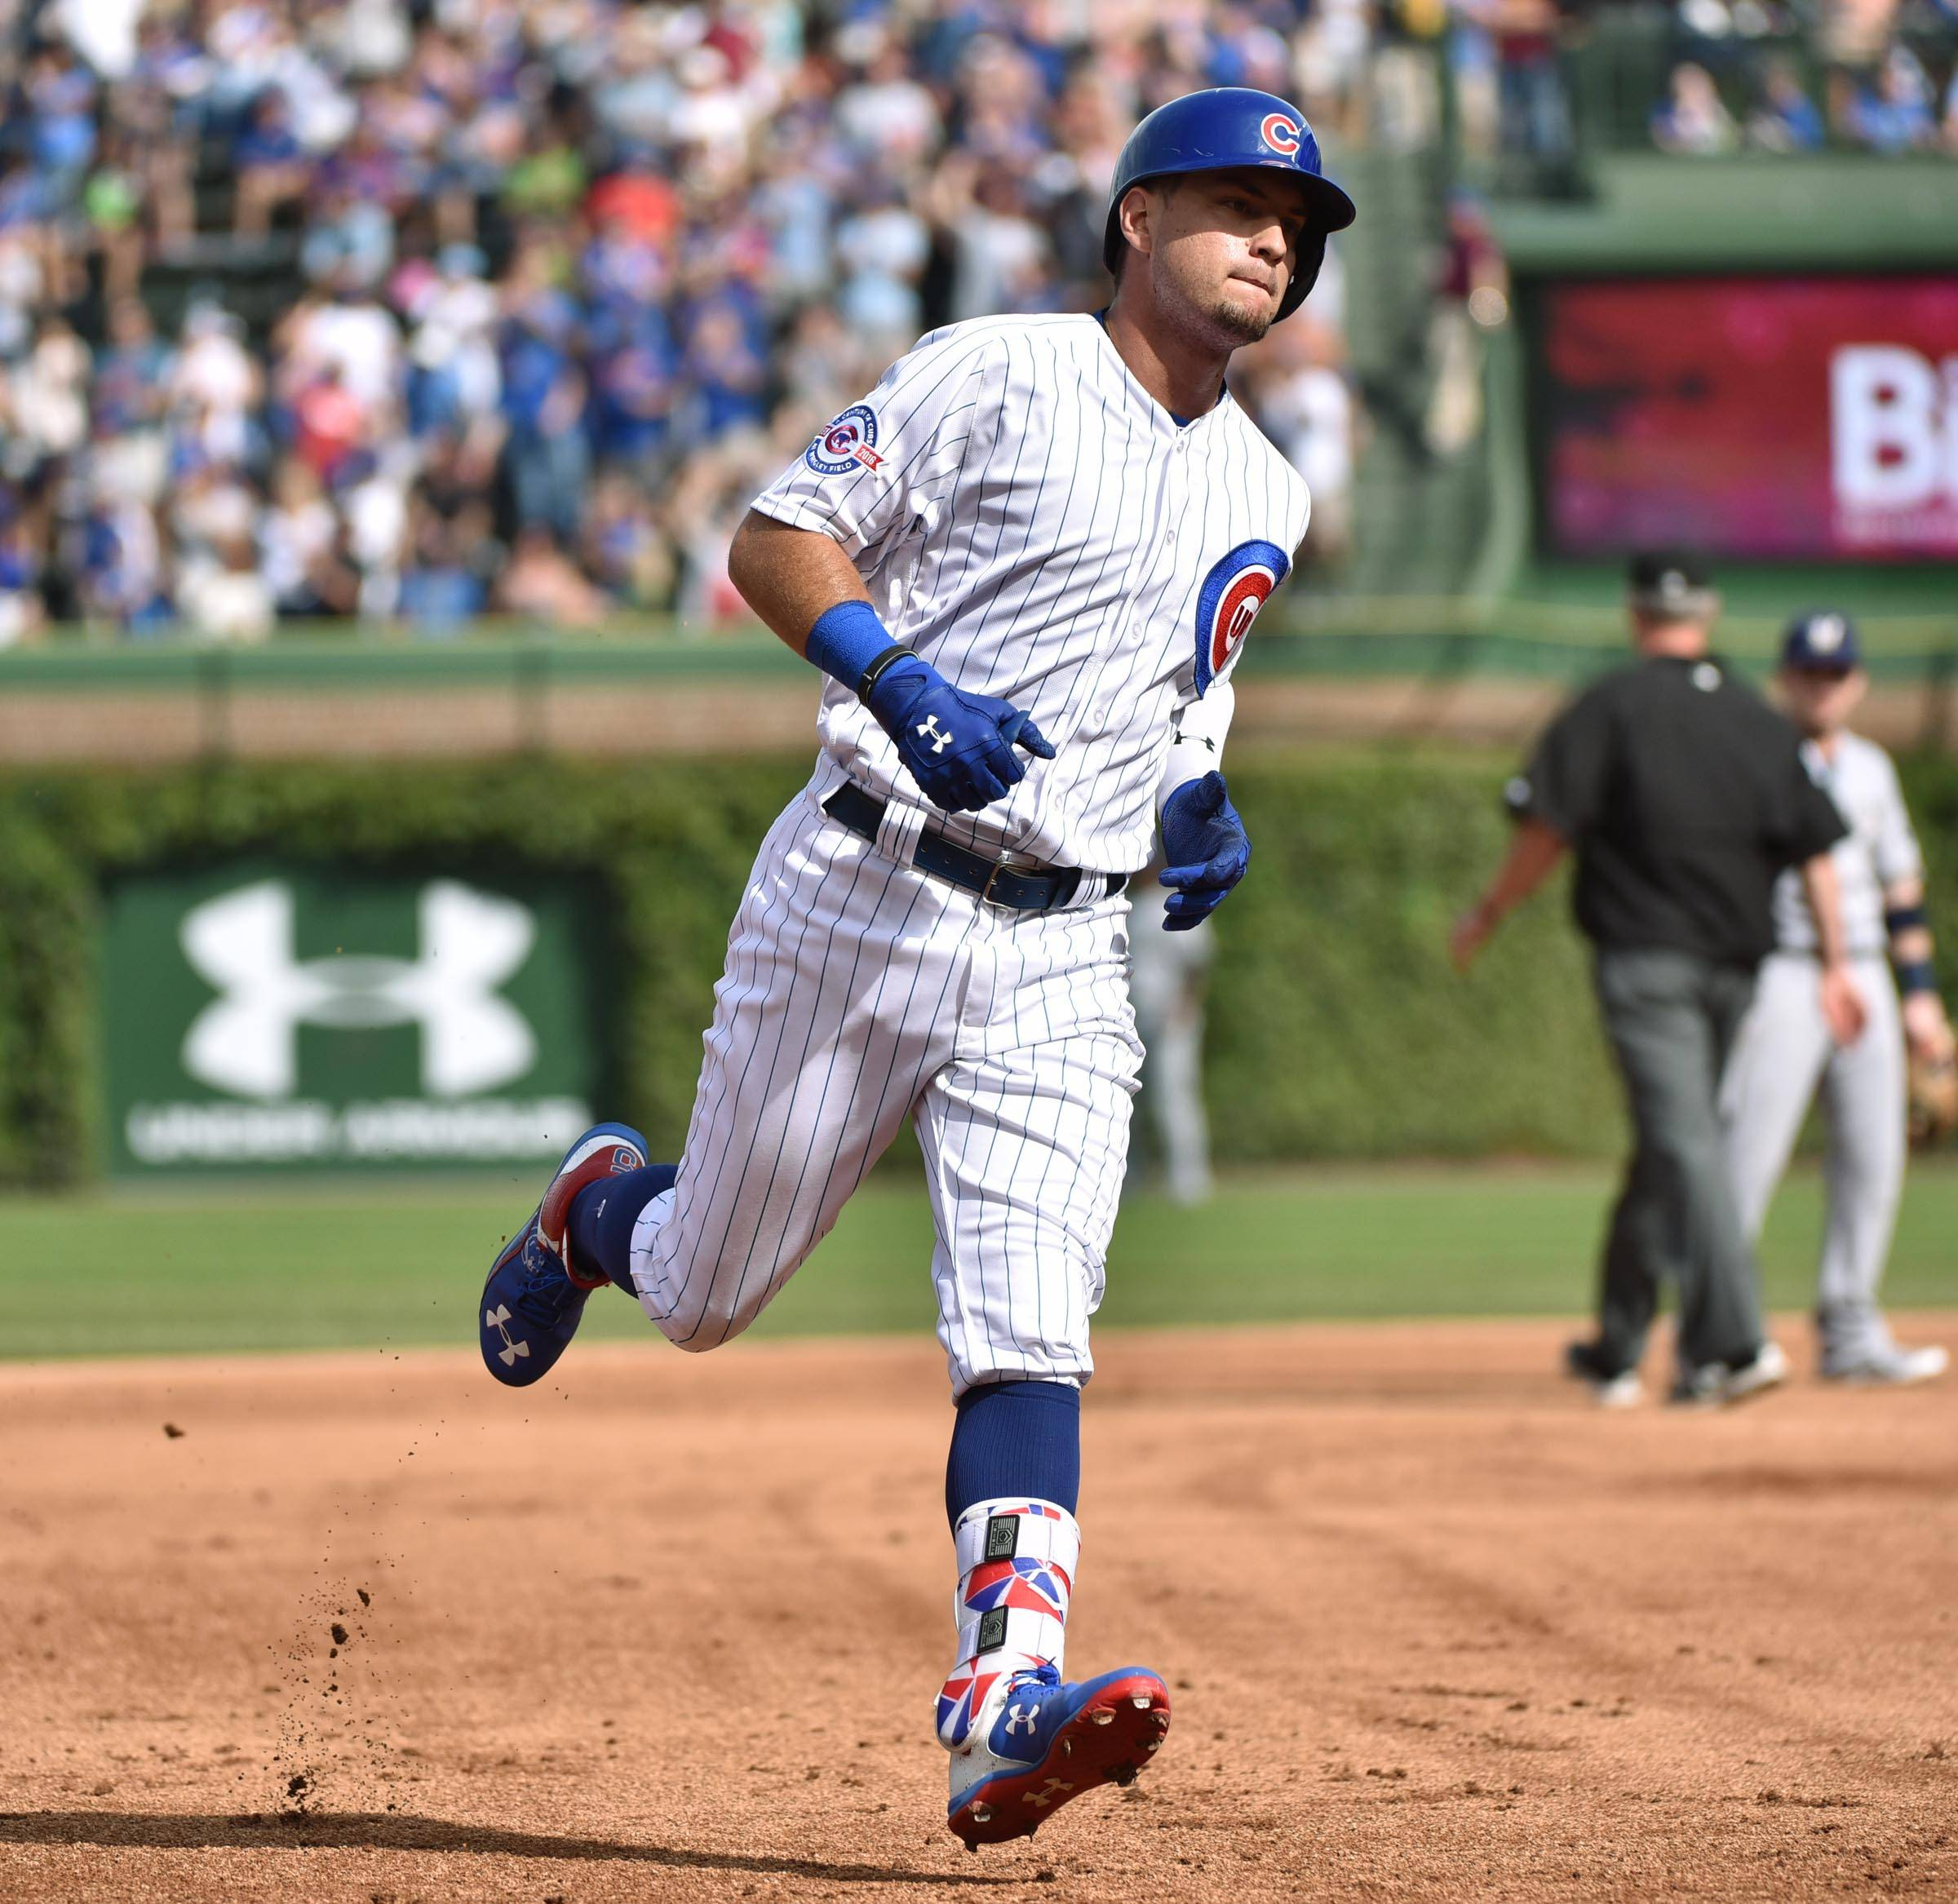 The Chicago Cubs drafted Albert Almora Jr. with the sixth overall pick in the 2012 MLB draft. Almora Jr. is one of the last five first round picks by the Cubs to already be making an impact on the main roster.